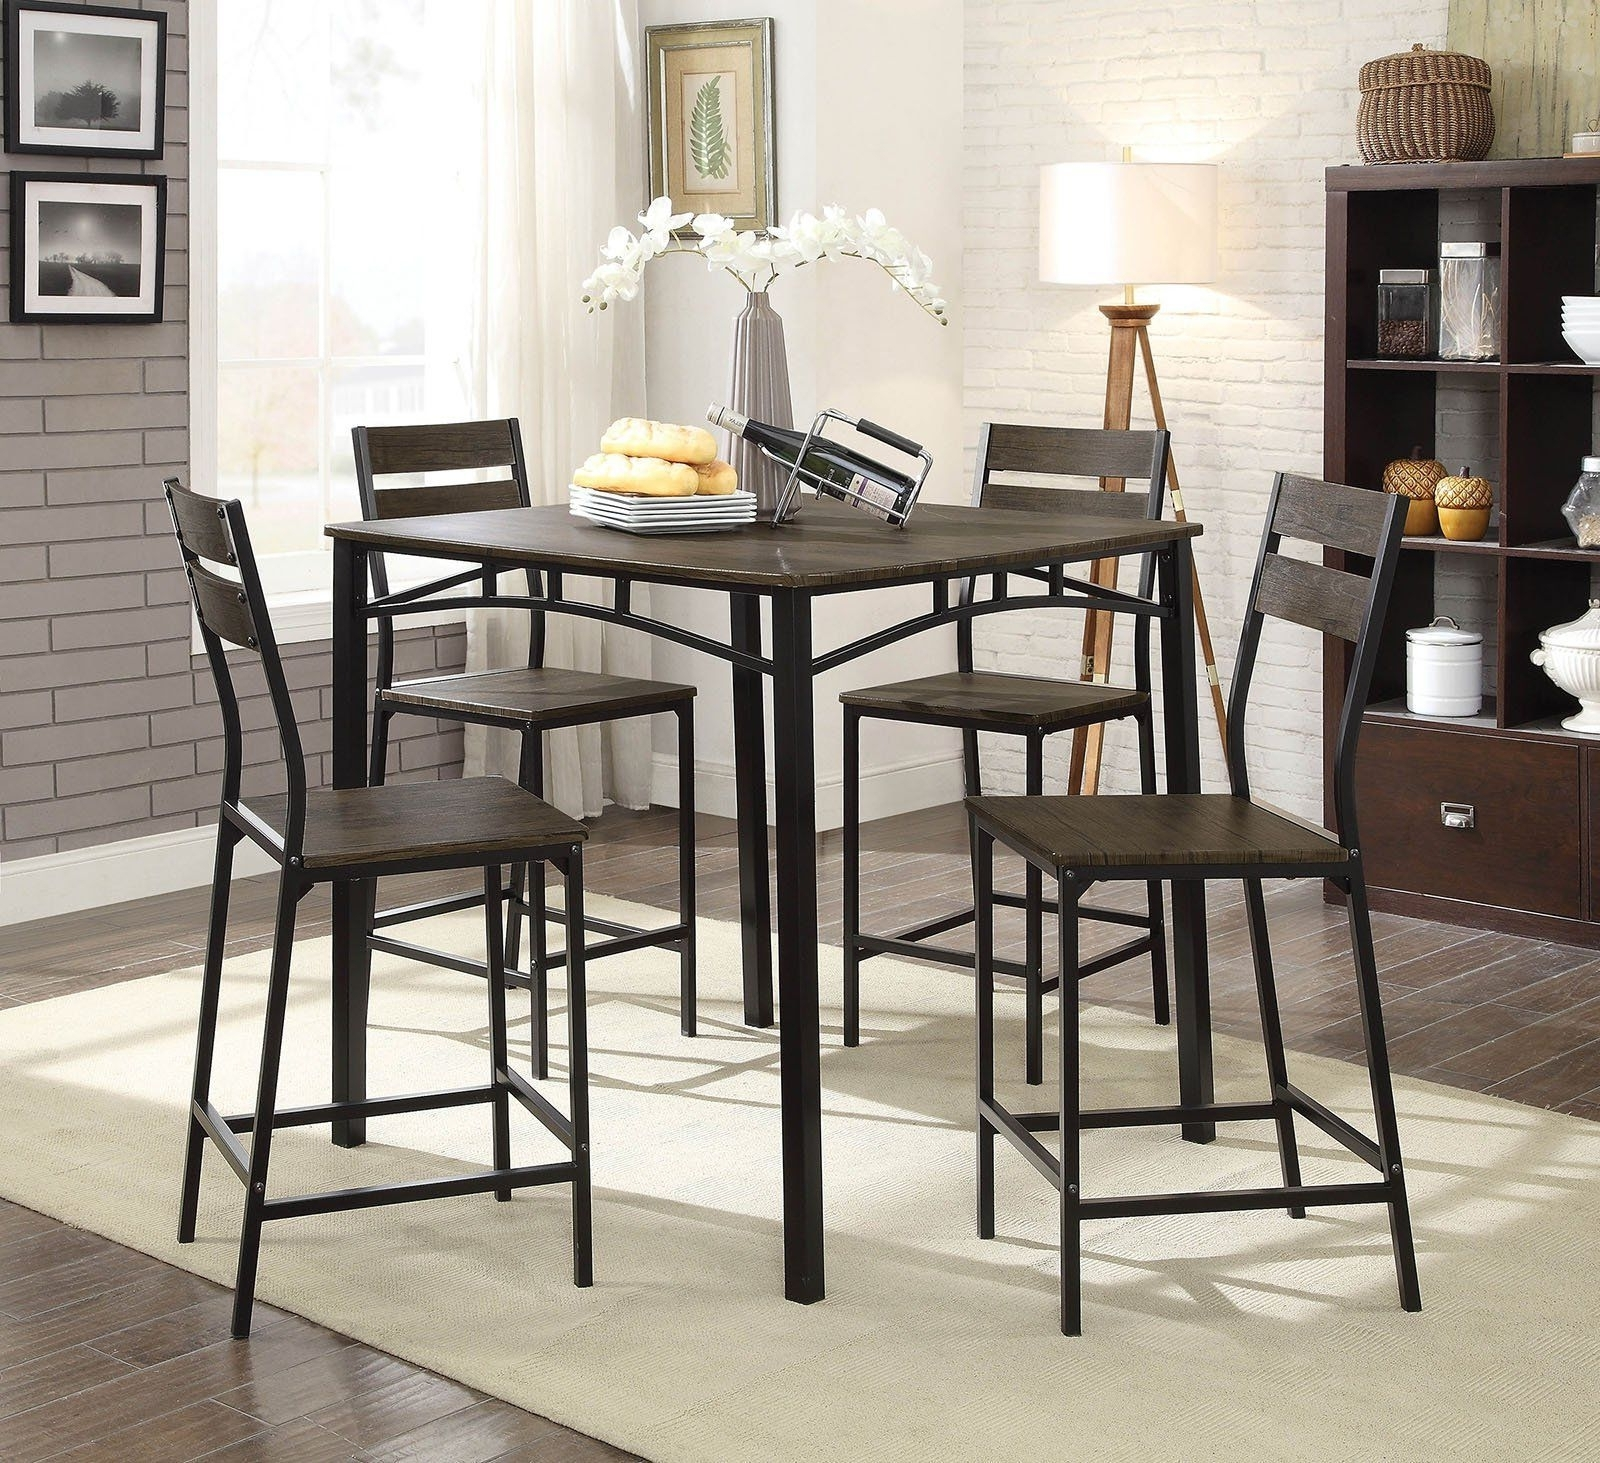 Well Known 5 Piece Metal And Wood Counter Height Table Set In Antique Brown In Throughout Market 5 Piece Counter Sets (View 7 of 25)